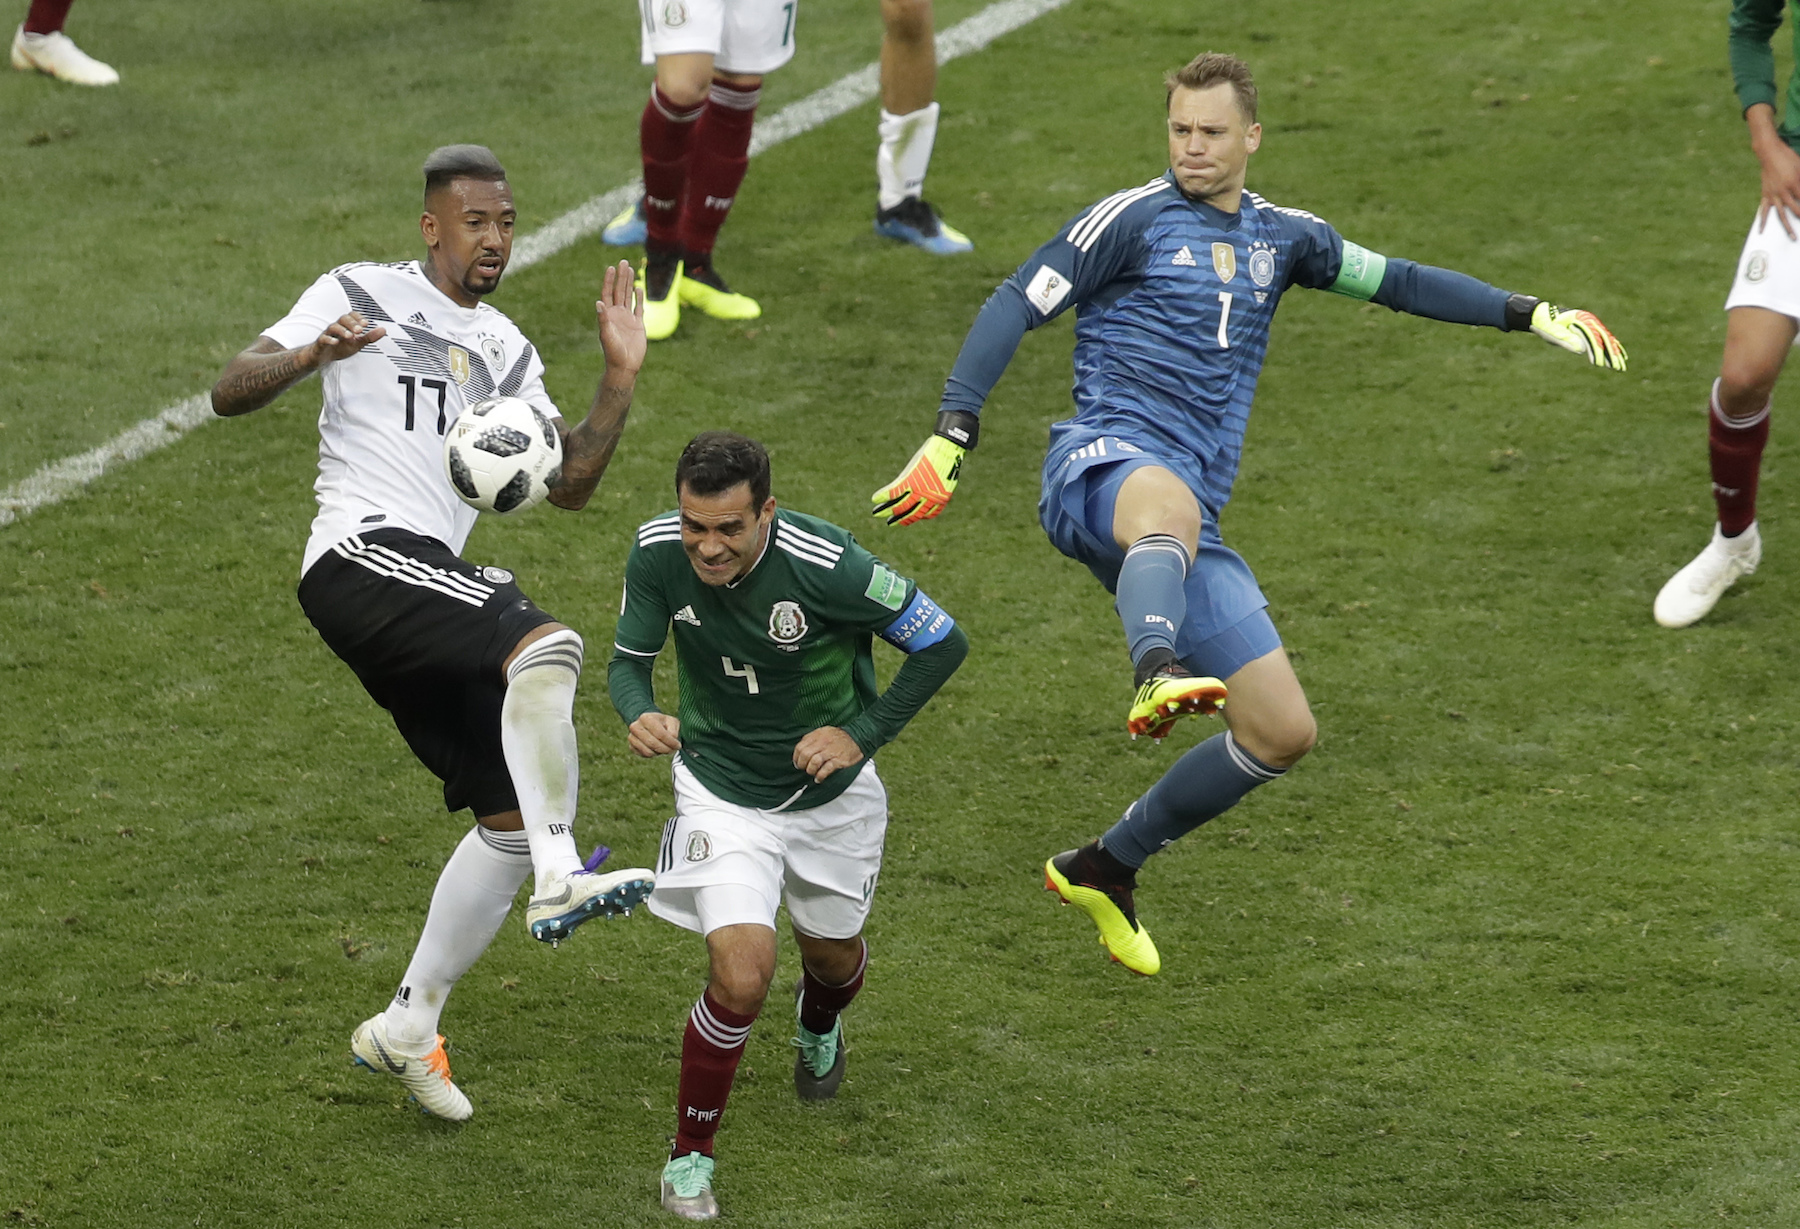 "<div class=""meta image-caption""><div class=""origin-logo origin-image ap""><span>AP</span></div><span class=""caption-text"">Germany's Jerome Boateng, left, and goalkeeper Manuel Neuer challenge for the ball with Mexico's Rafael Marquez during the group F match between Germany and Mexico. (AP Photo/Michael Probst)</span></div>"